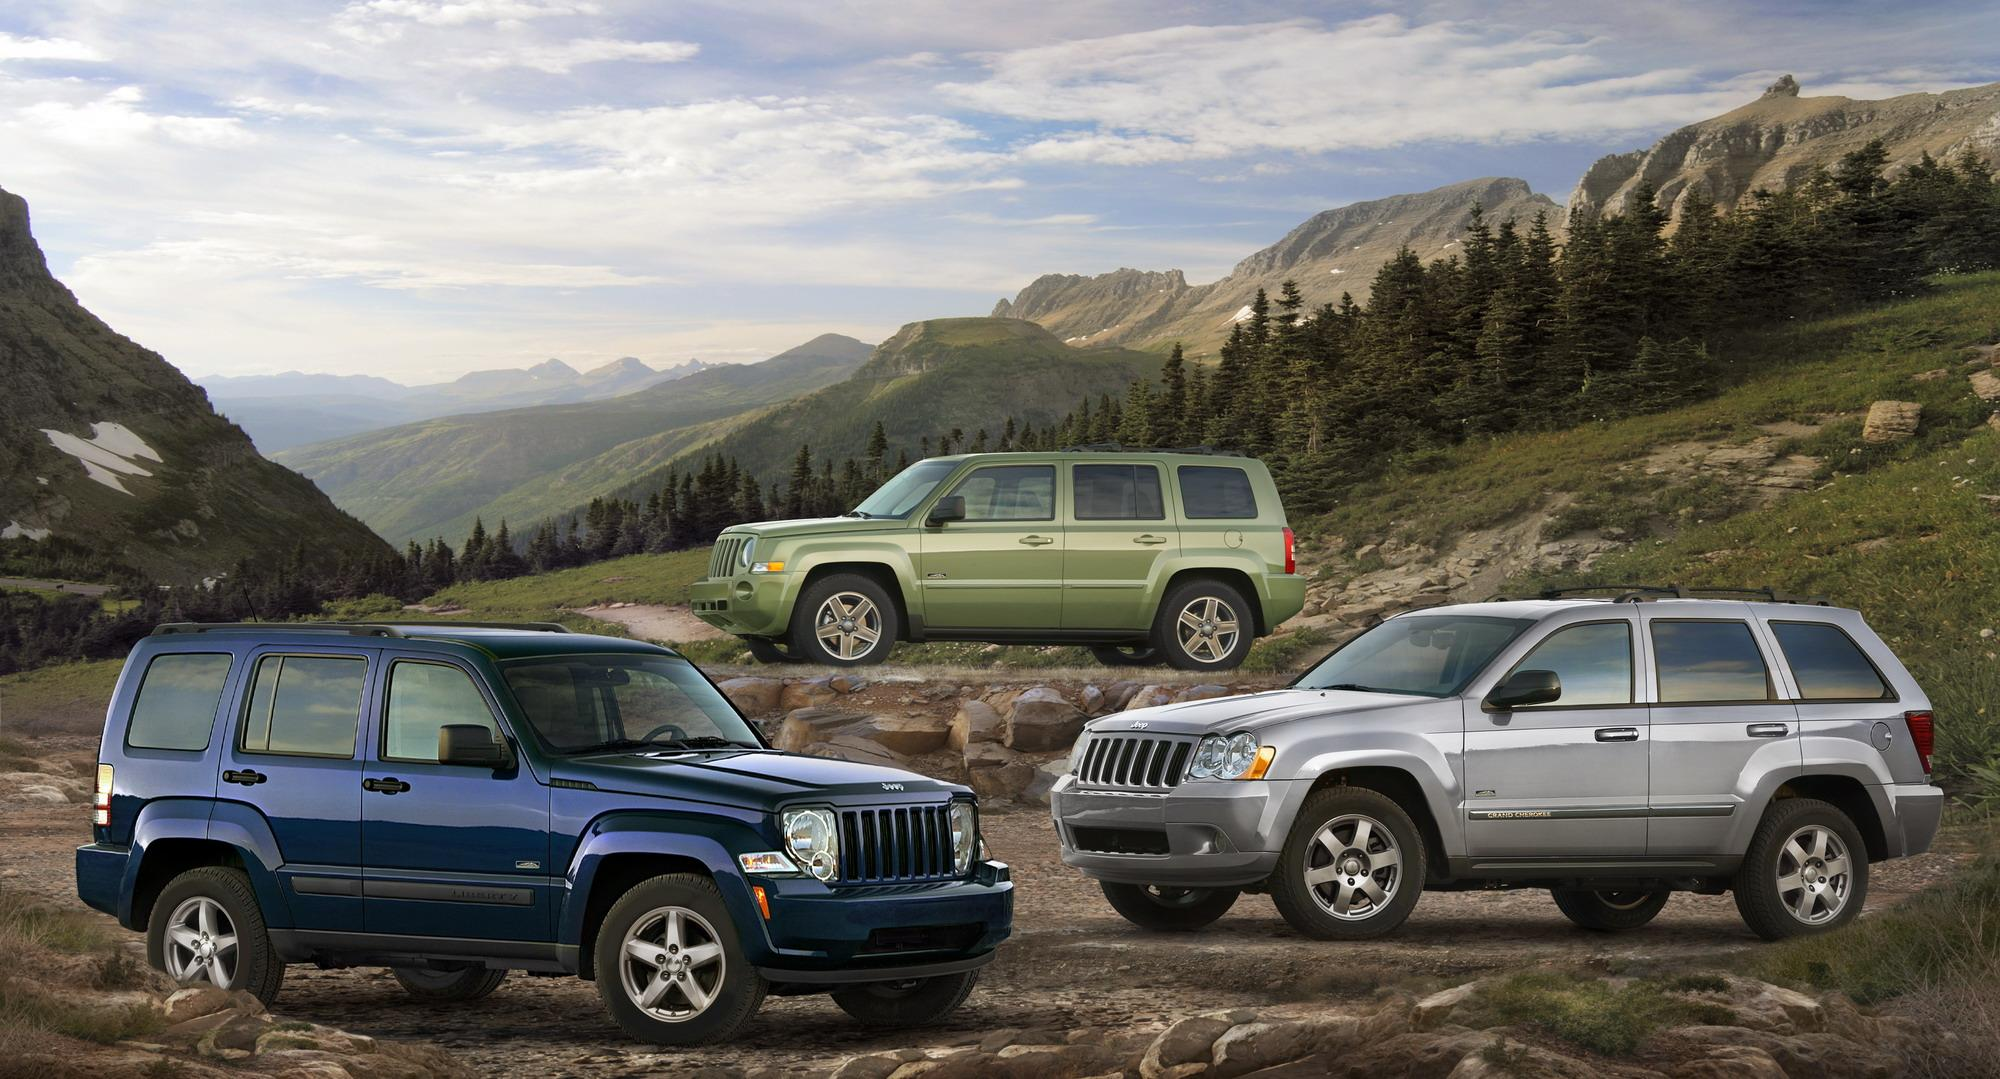 2009 Jeep Patriot Liberty And Grand Cherokee Rocky Mountain Edition